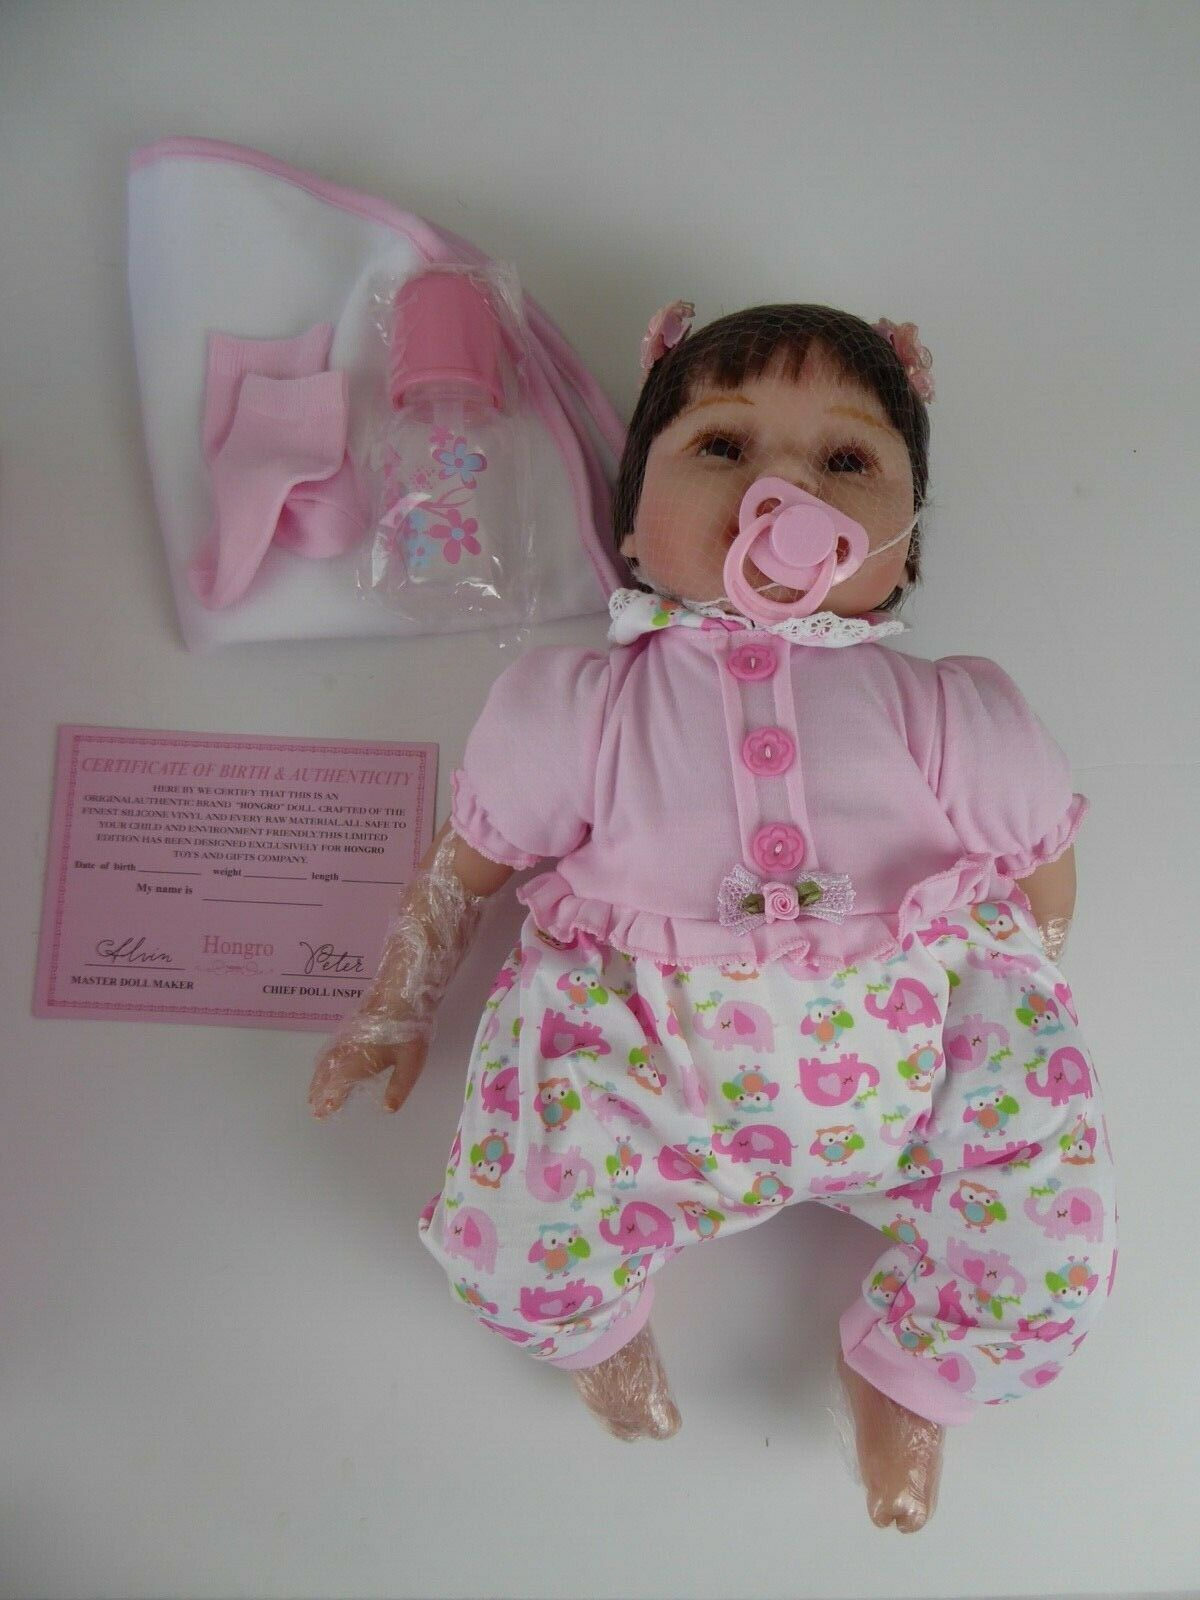 HONGRO DOLL REBORN - SILICONE VINYL WITH ACCESSORIES - NEW AND BOXED